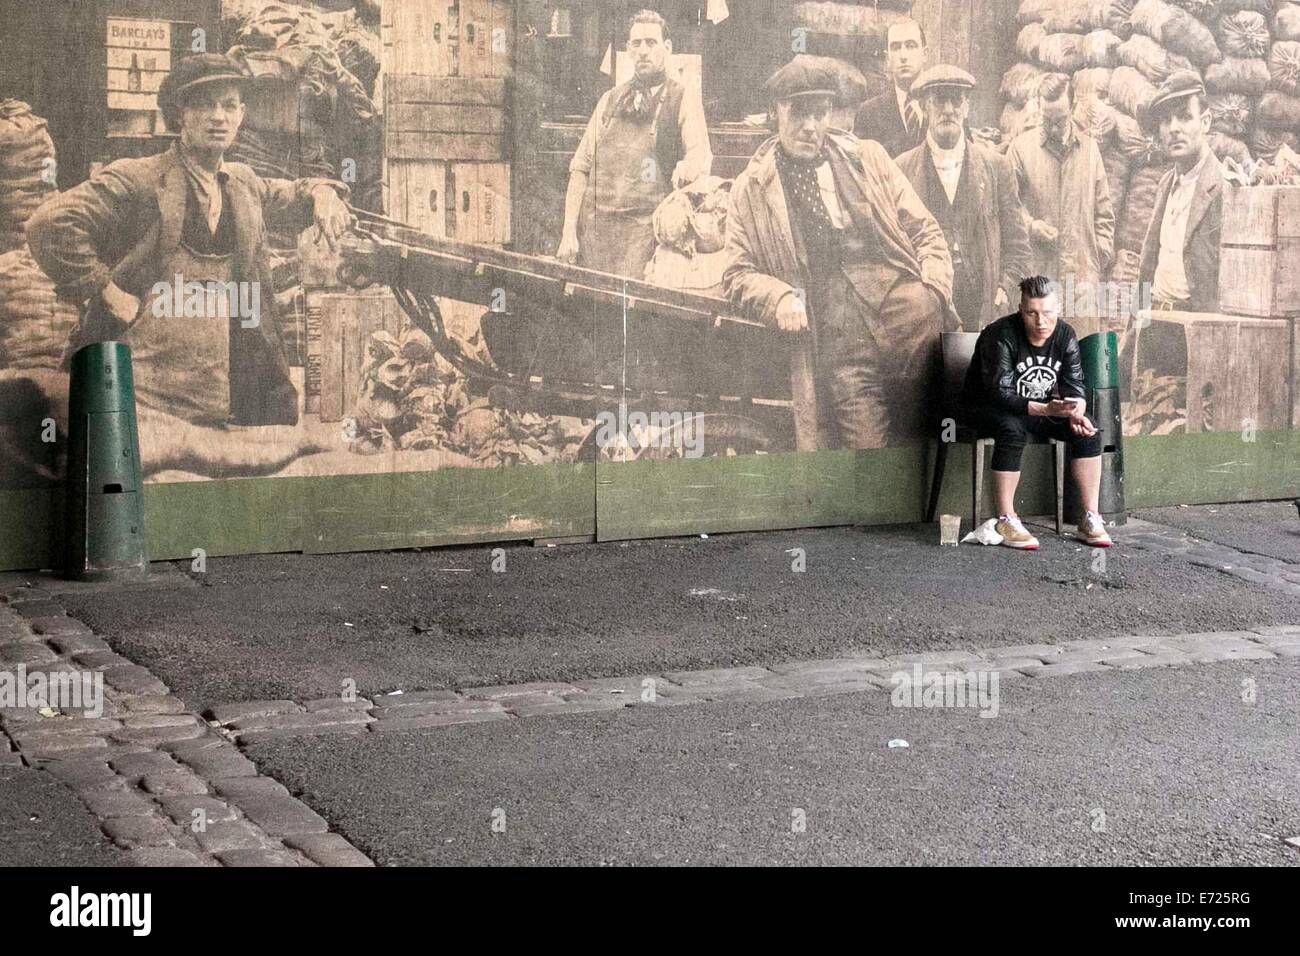 Borough Market , London. A young man sits in front a large historical photo of the market. - Stock Image